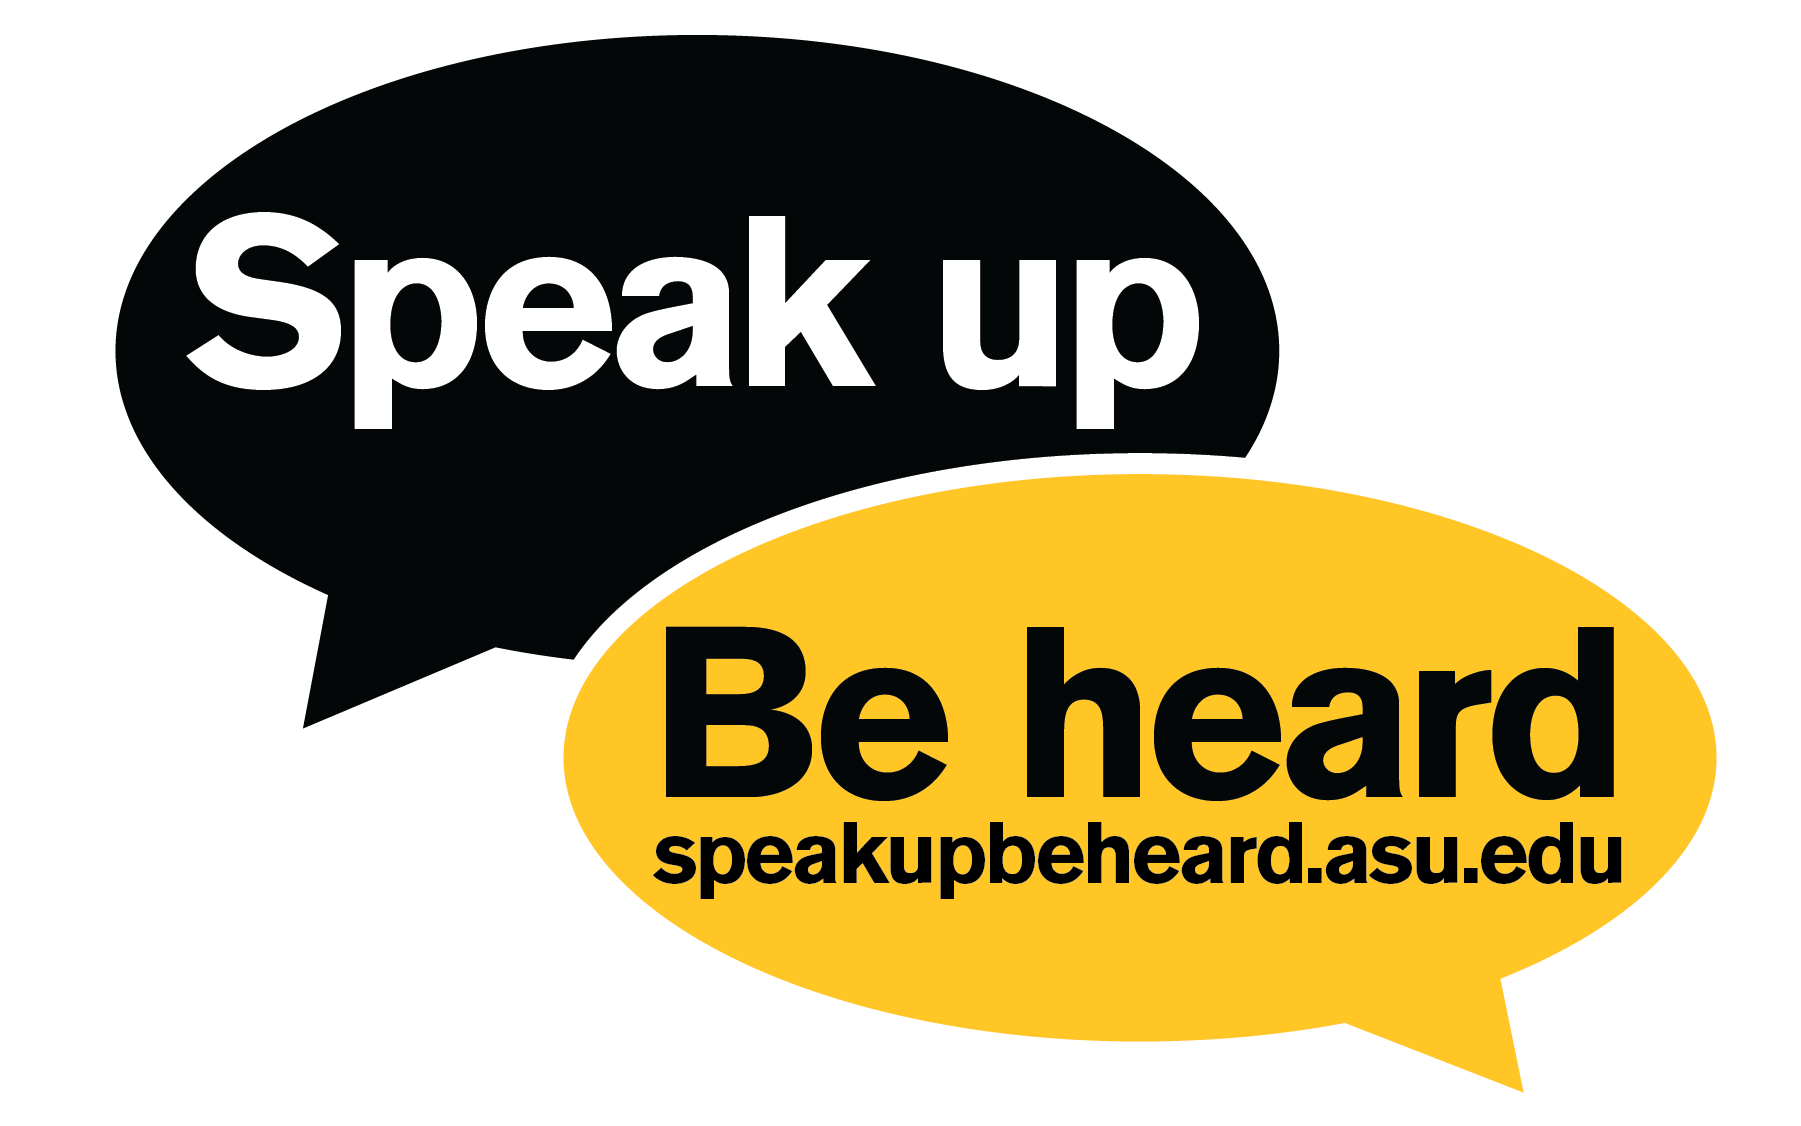 ASU Staff Council Speak up Be heard graphic element